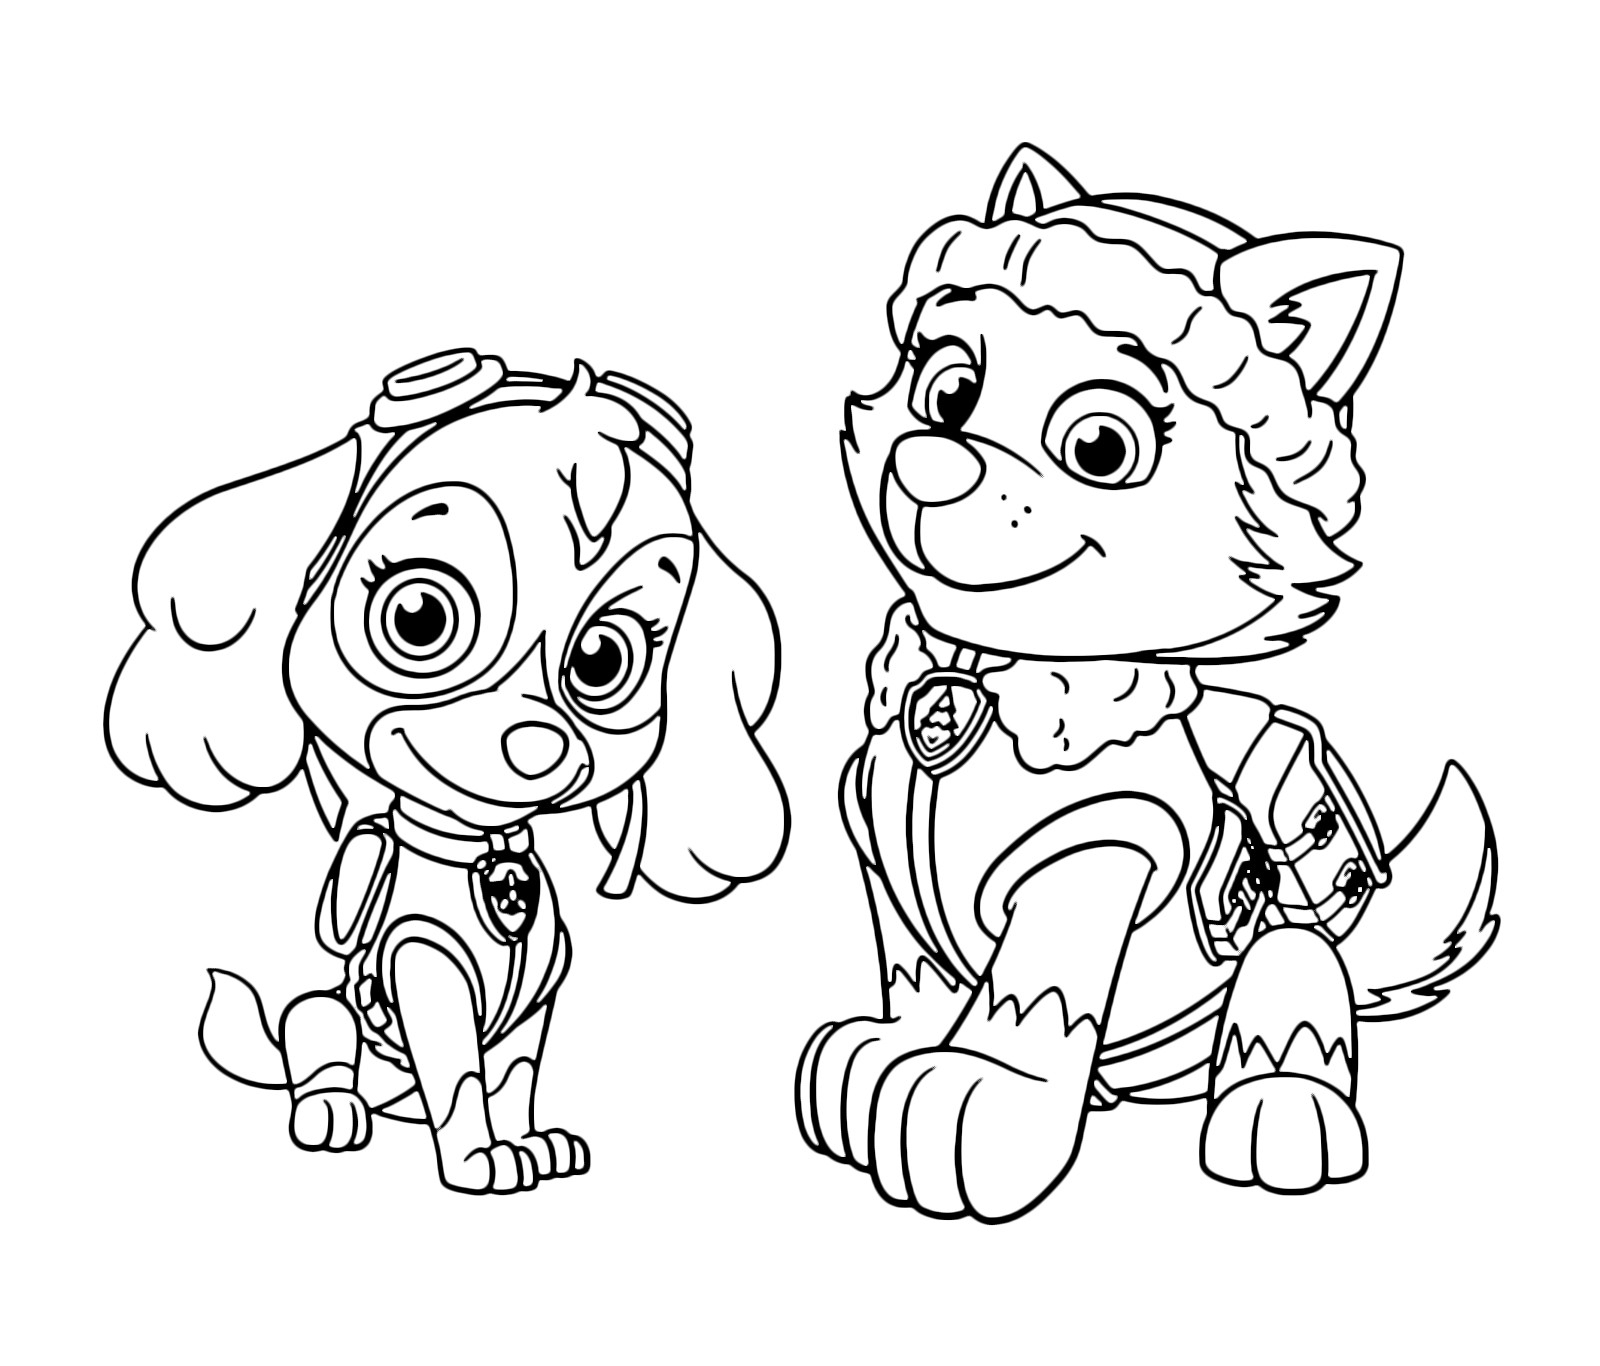 Paw Patrol Coloring Pages Printable | Free Coloring Sheets